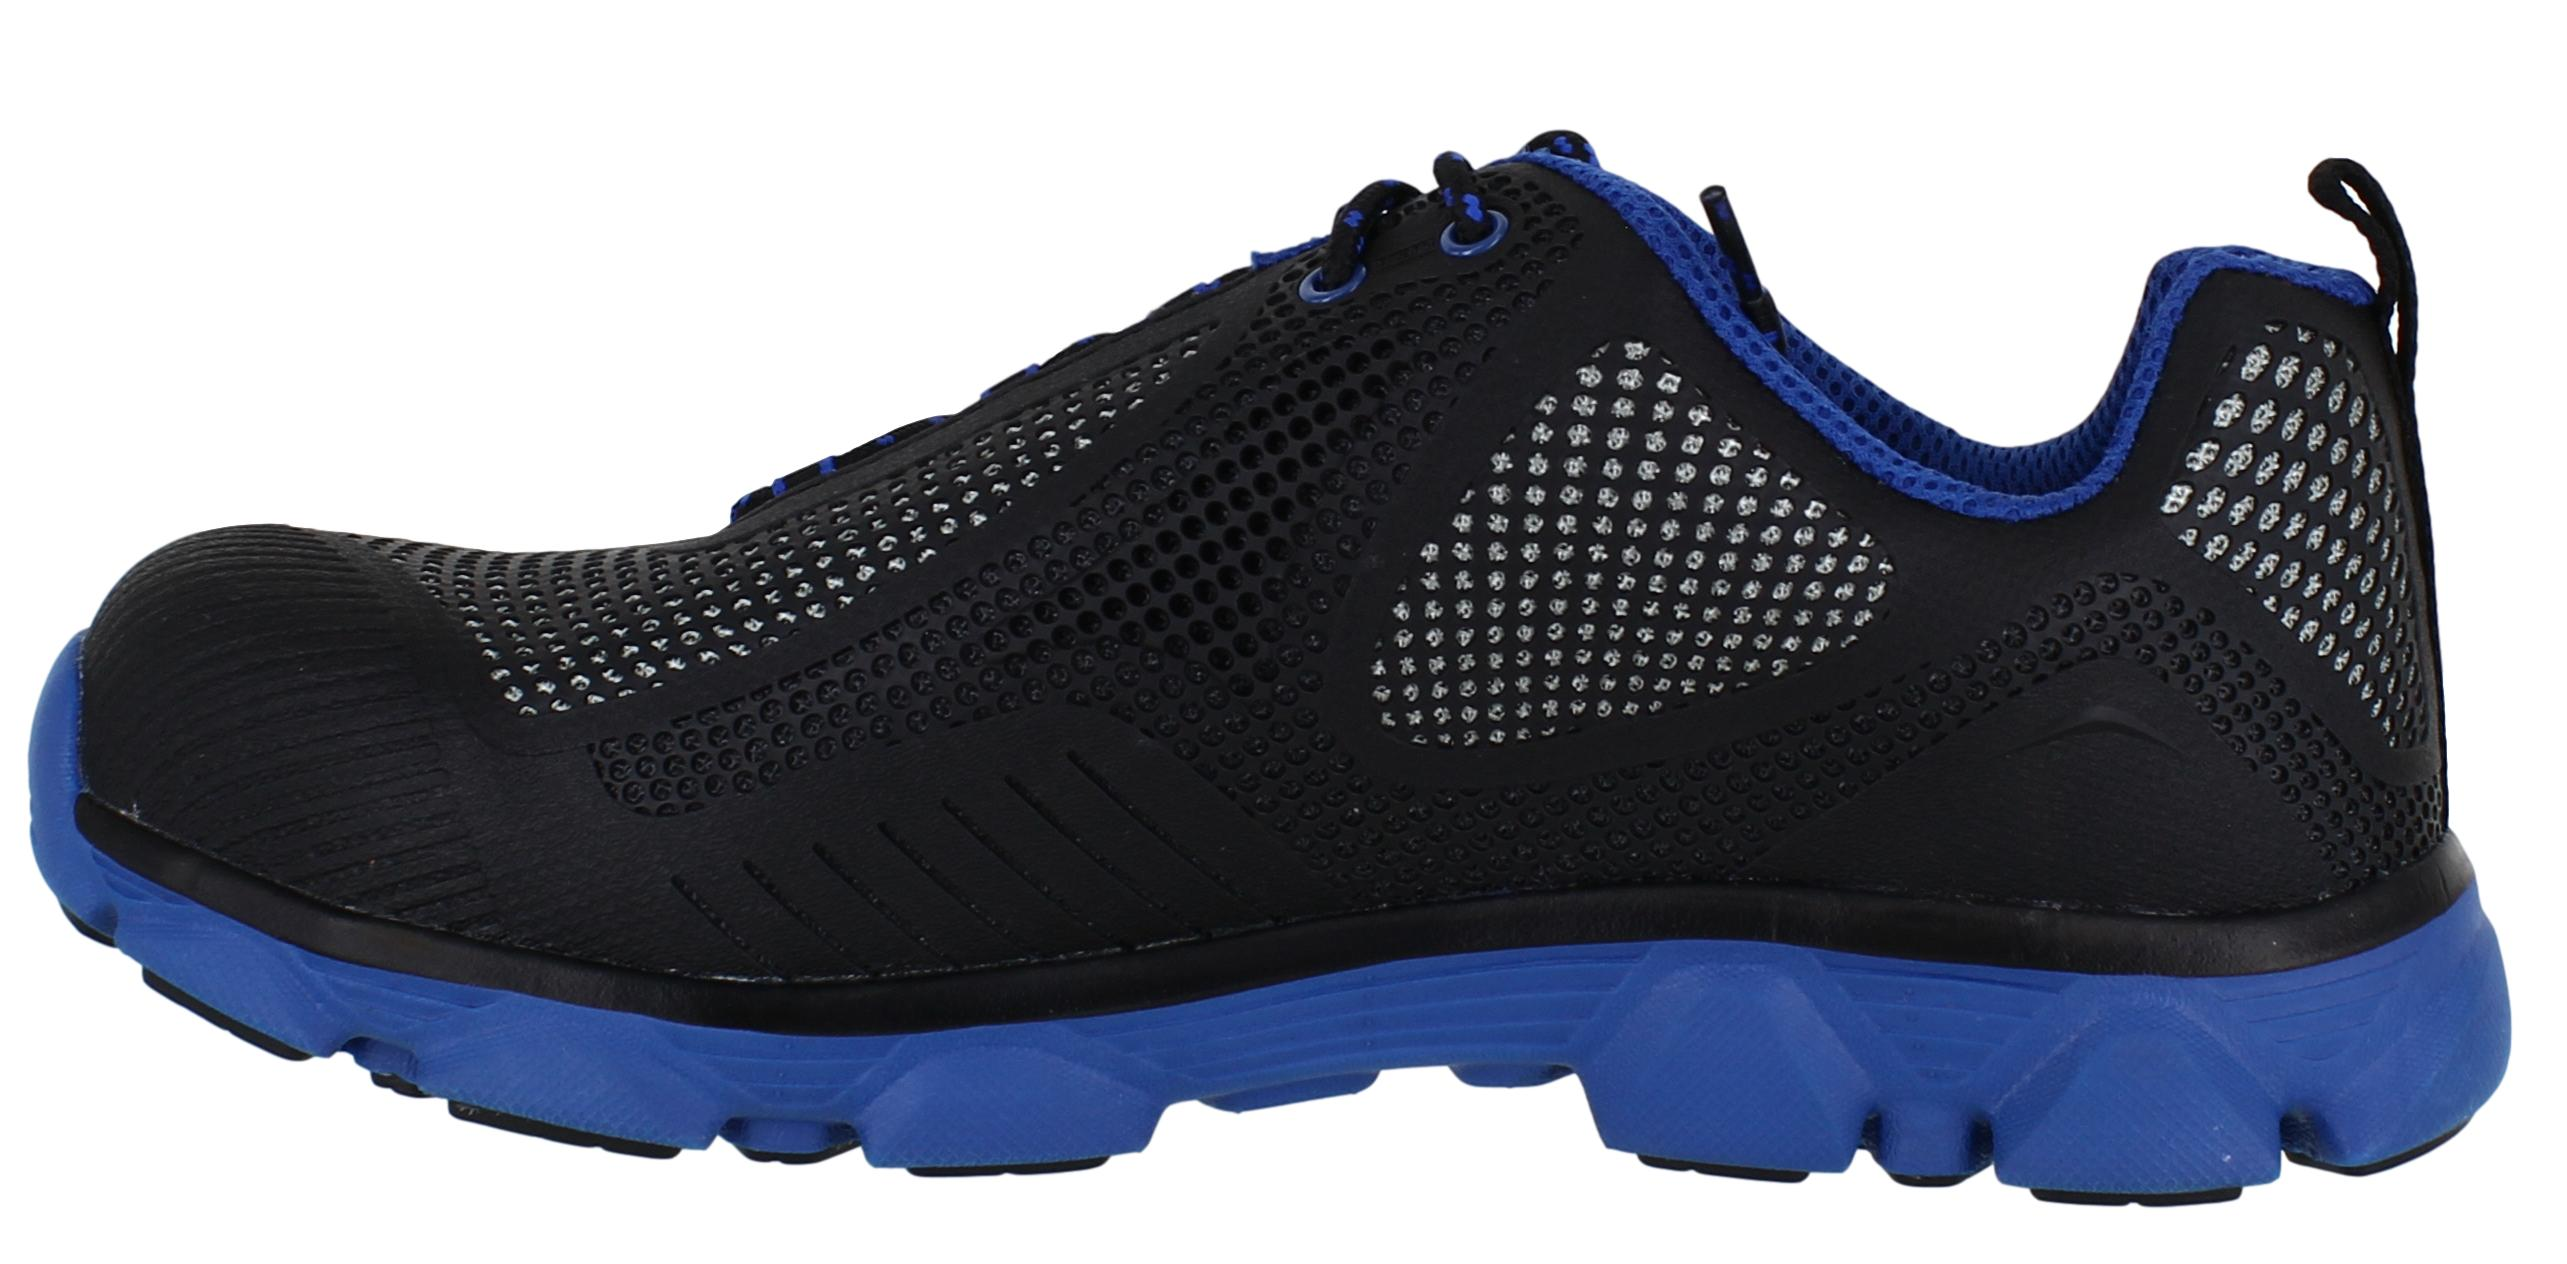 dfe4aed907d Details about DeWalt Krypton - Mens Safety Lightweight Trainers Shoes -  Steel Toe